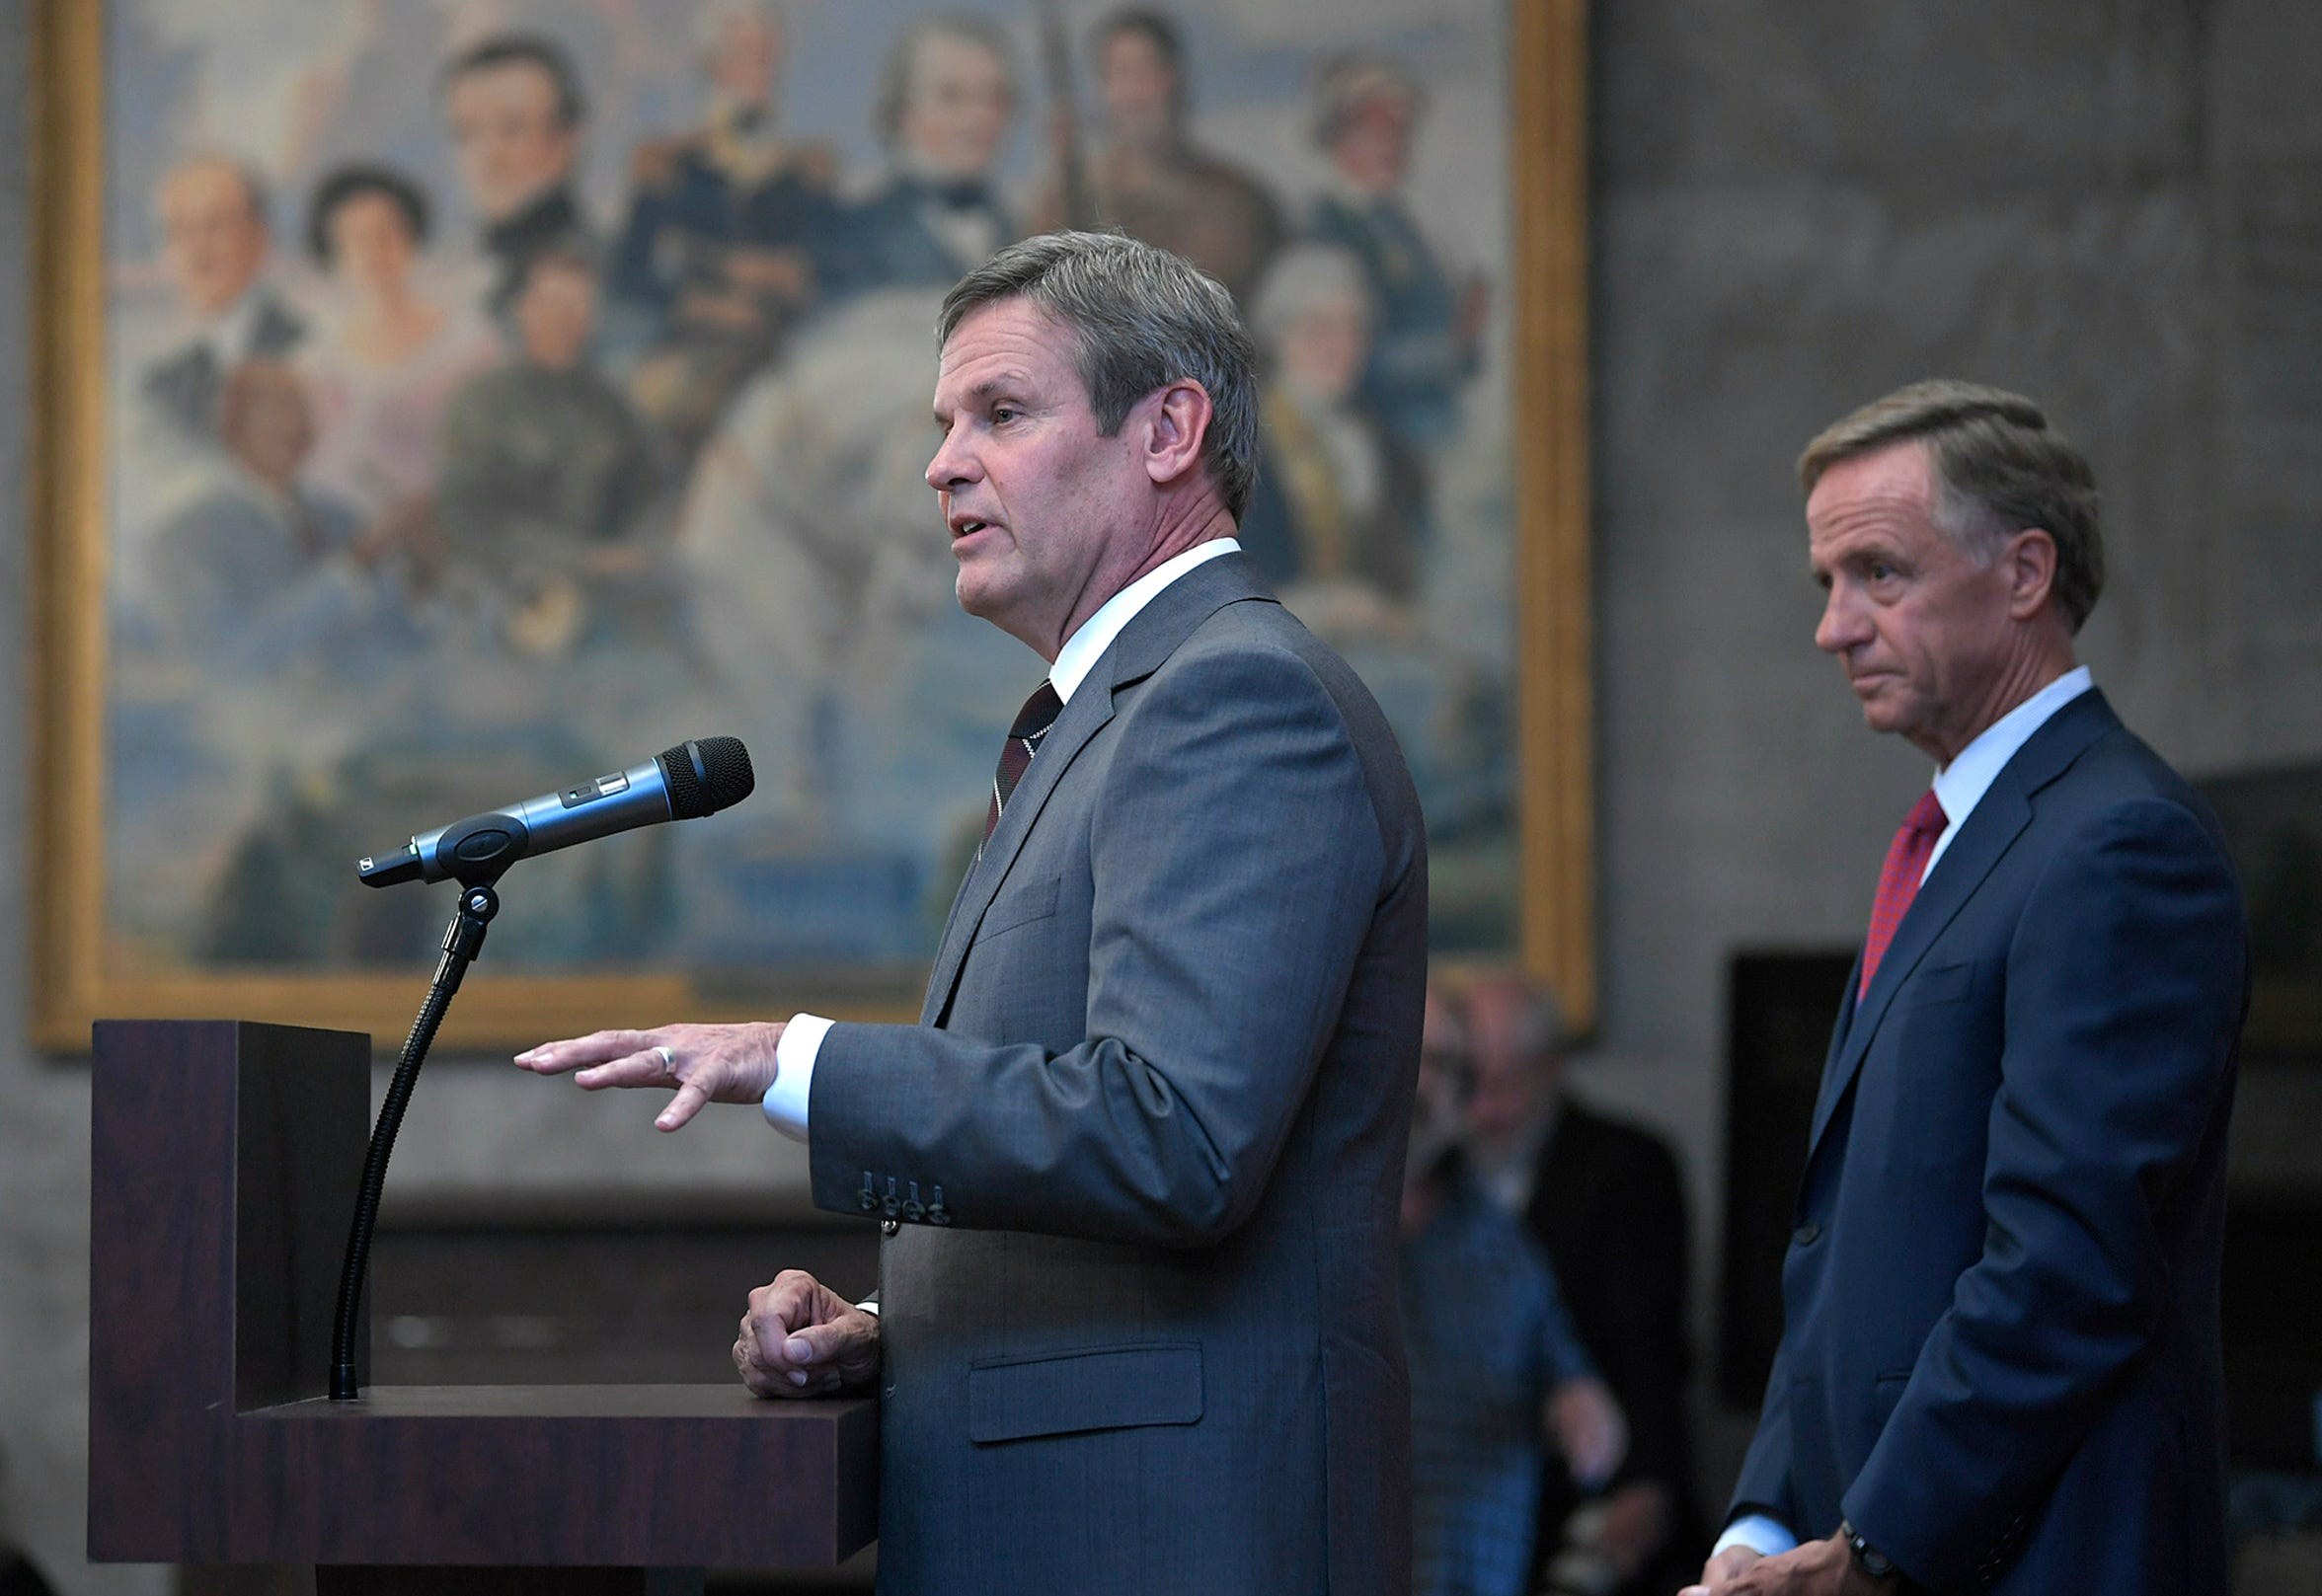 Governor-elect Bill Lee and Gov. Bill Haslam held a joint press conference on Wednesday, Nov. 7, 2018 at the Tennessee State Capitol.